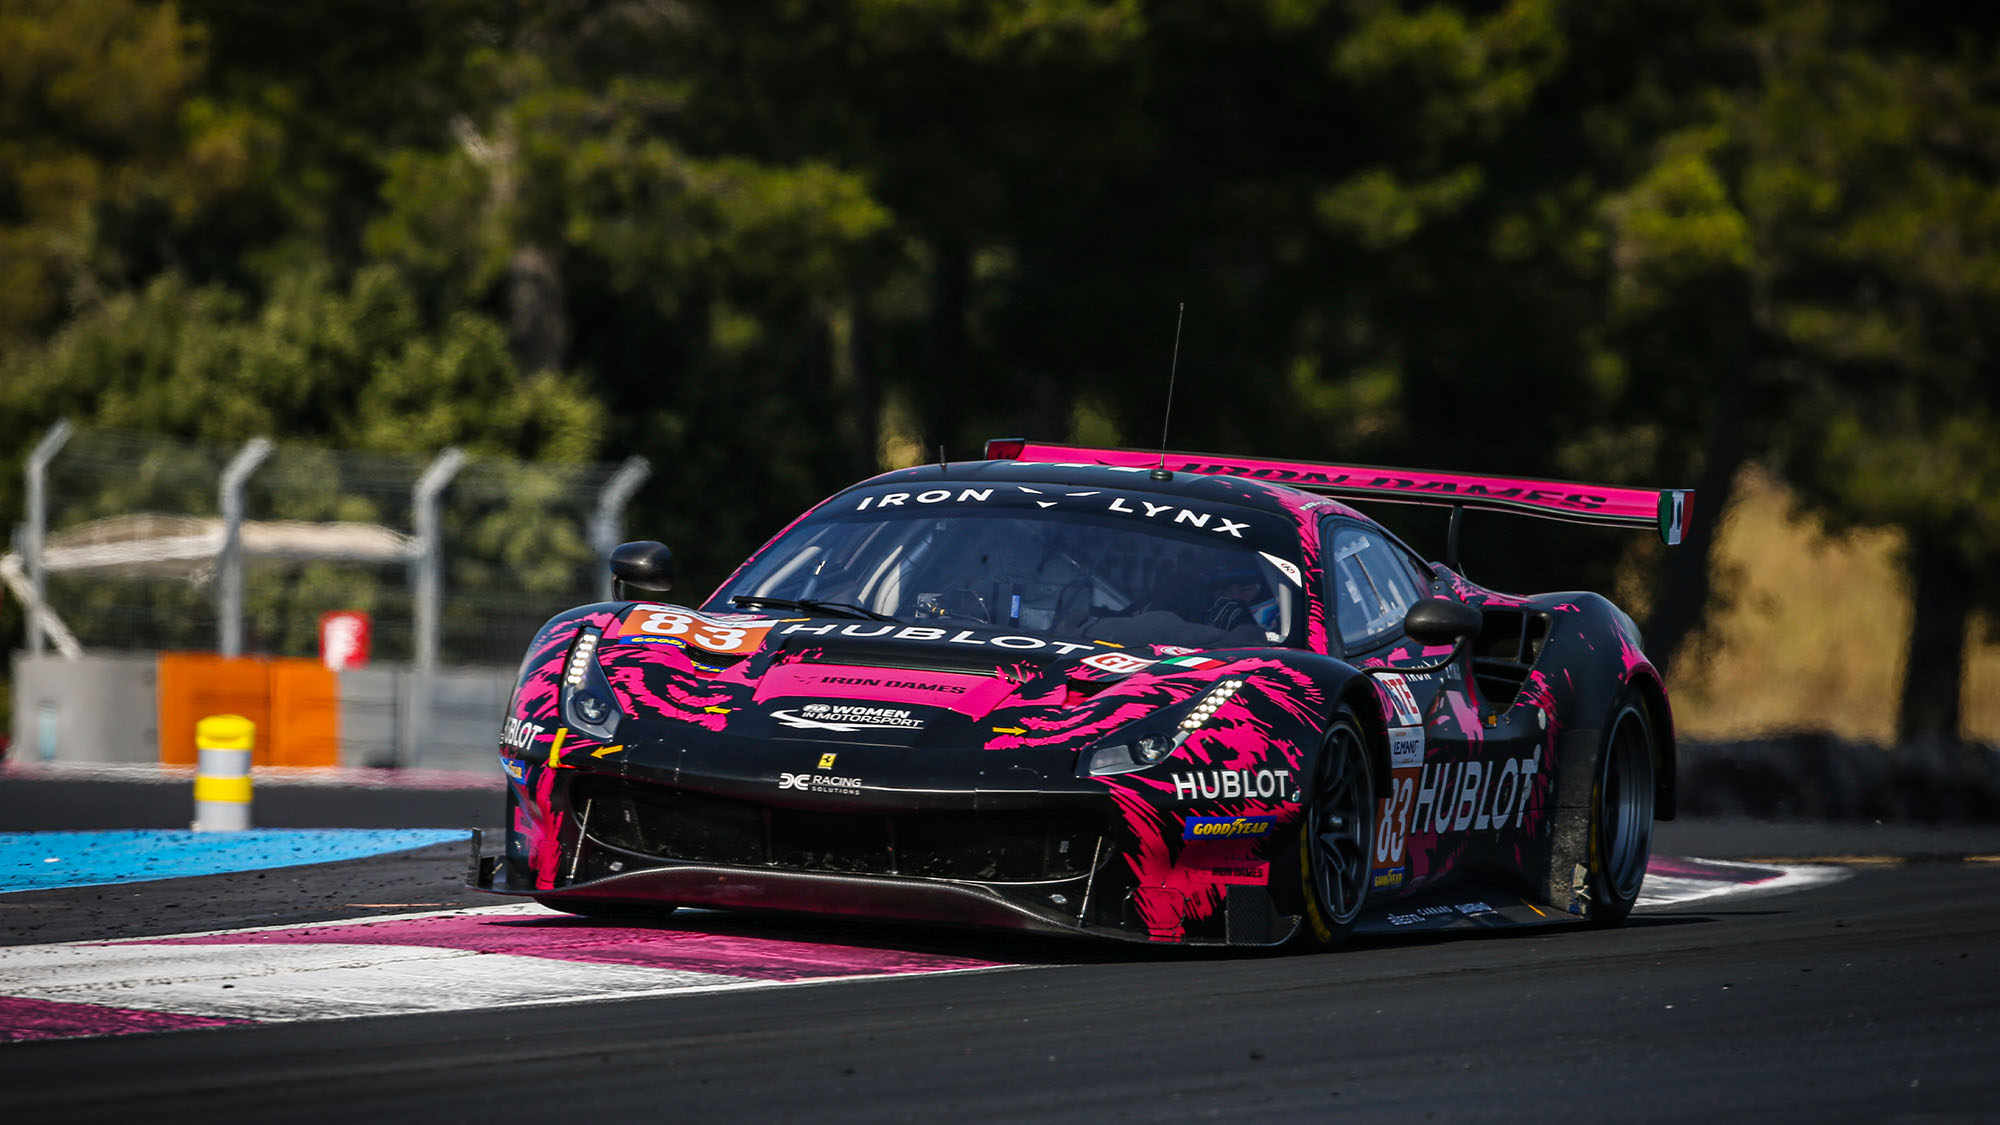 83 Gostner Manuel (ita), Gatting Michelle (dnk), Frey Rahel (che), Iron Lynx, Ferrari 488 GTE Evo, action during the 2020 European Le Mans Series official tests, from July 14 to 15, 2020 on the Circuit Paul Ricard , in Le Castellet, France - Photo Francois Flamand / DPPI